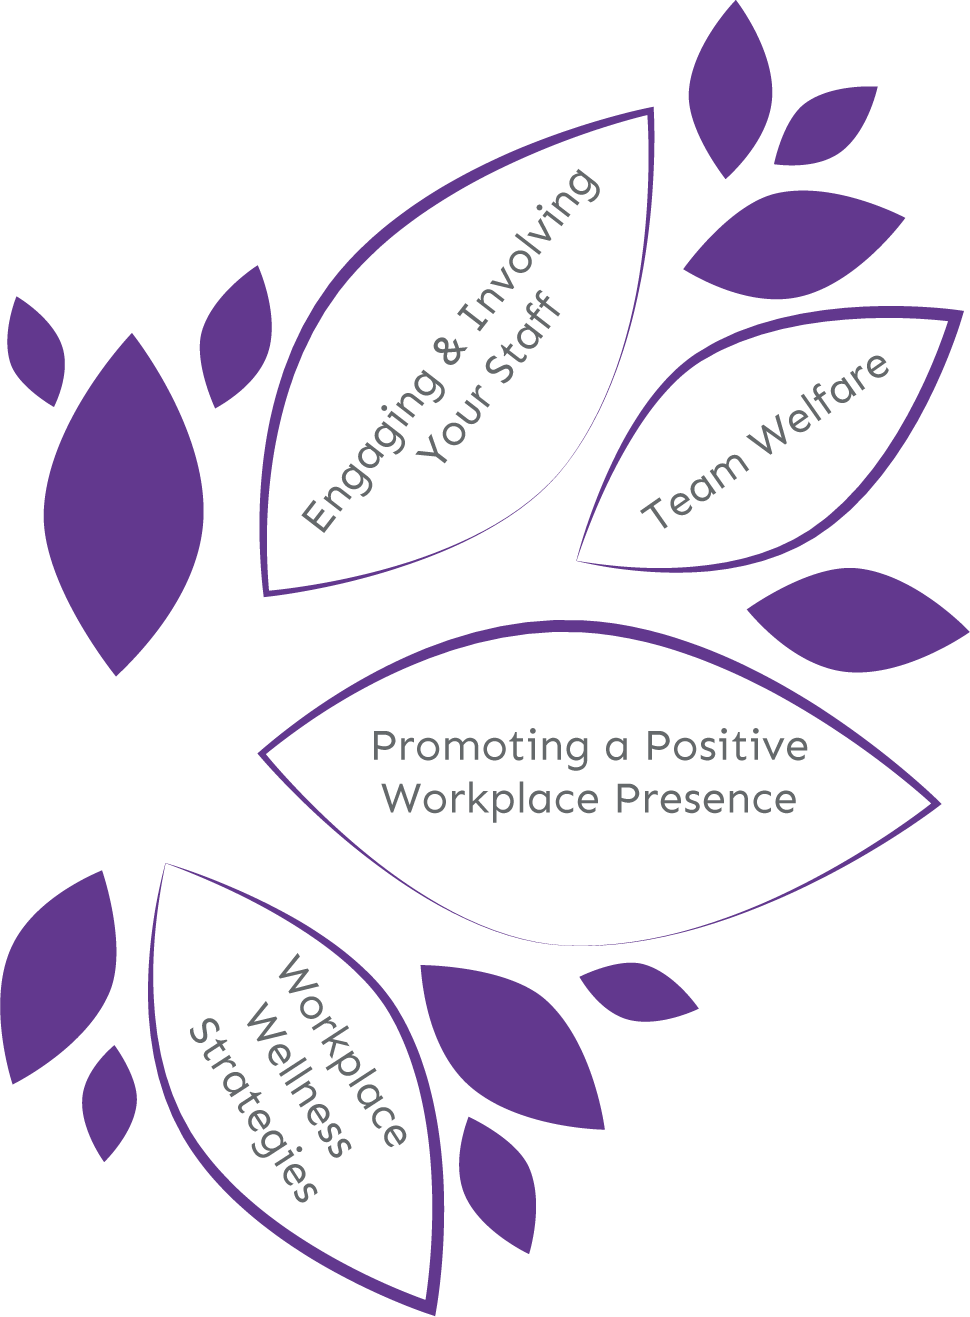 Workplace Wellbeing Branch of You HR Tree of People Growth